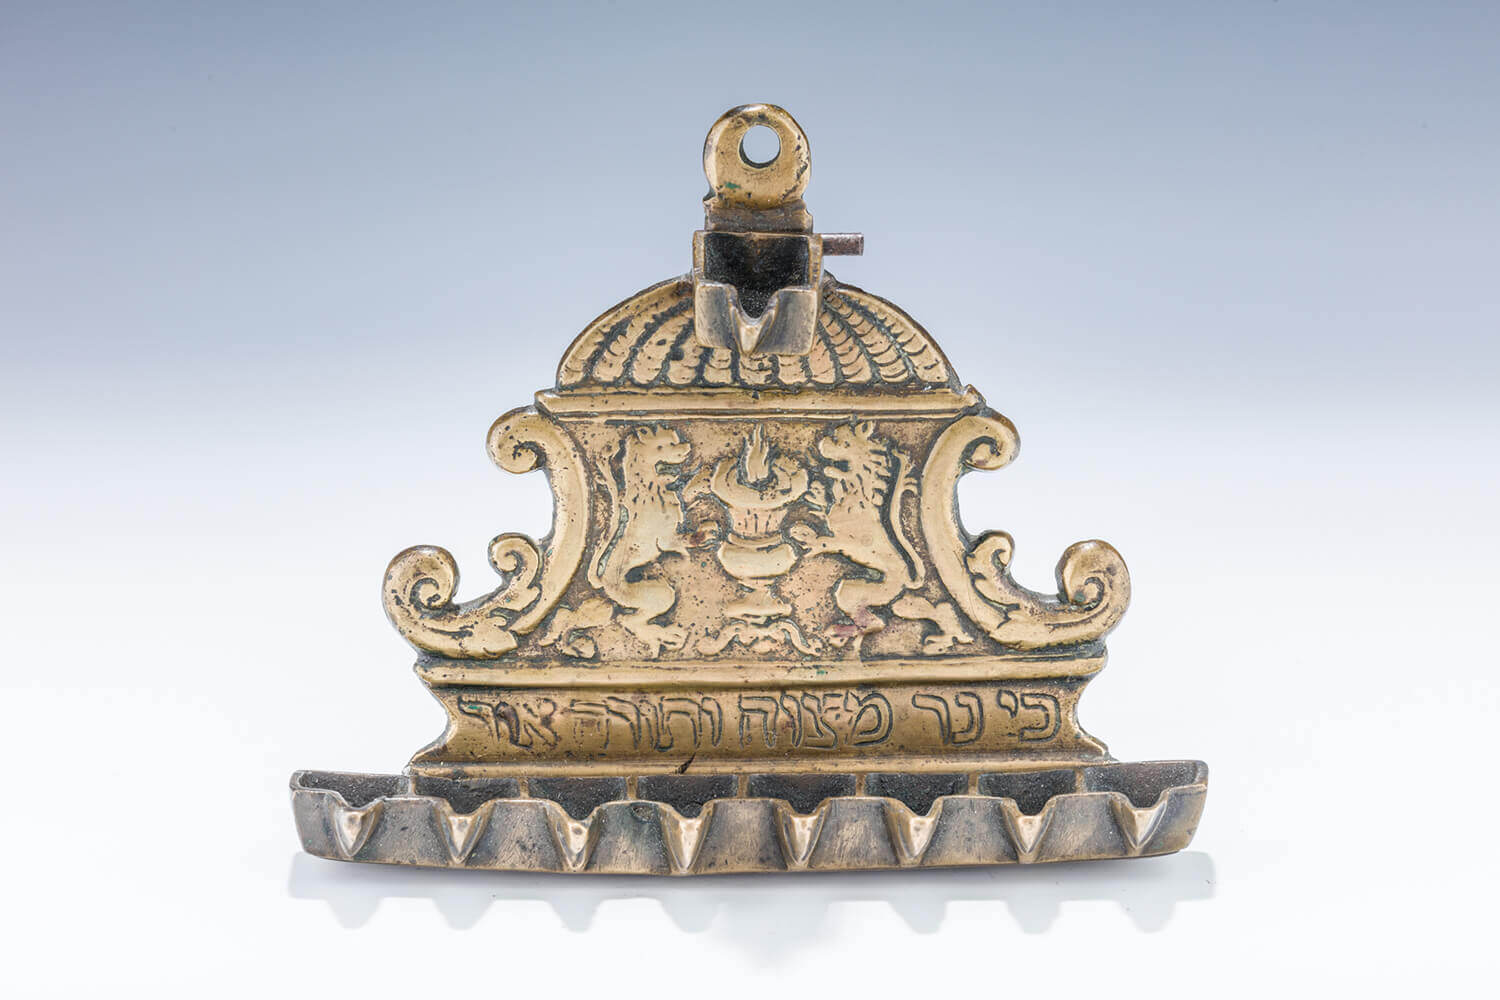 051. AN EARLY AND IMPORTANT BRASS HANUKKAH LAMP